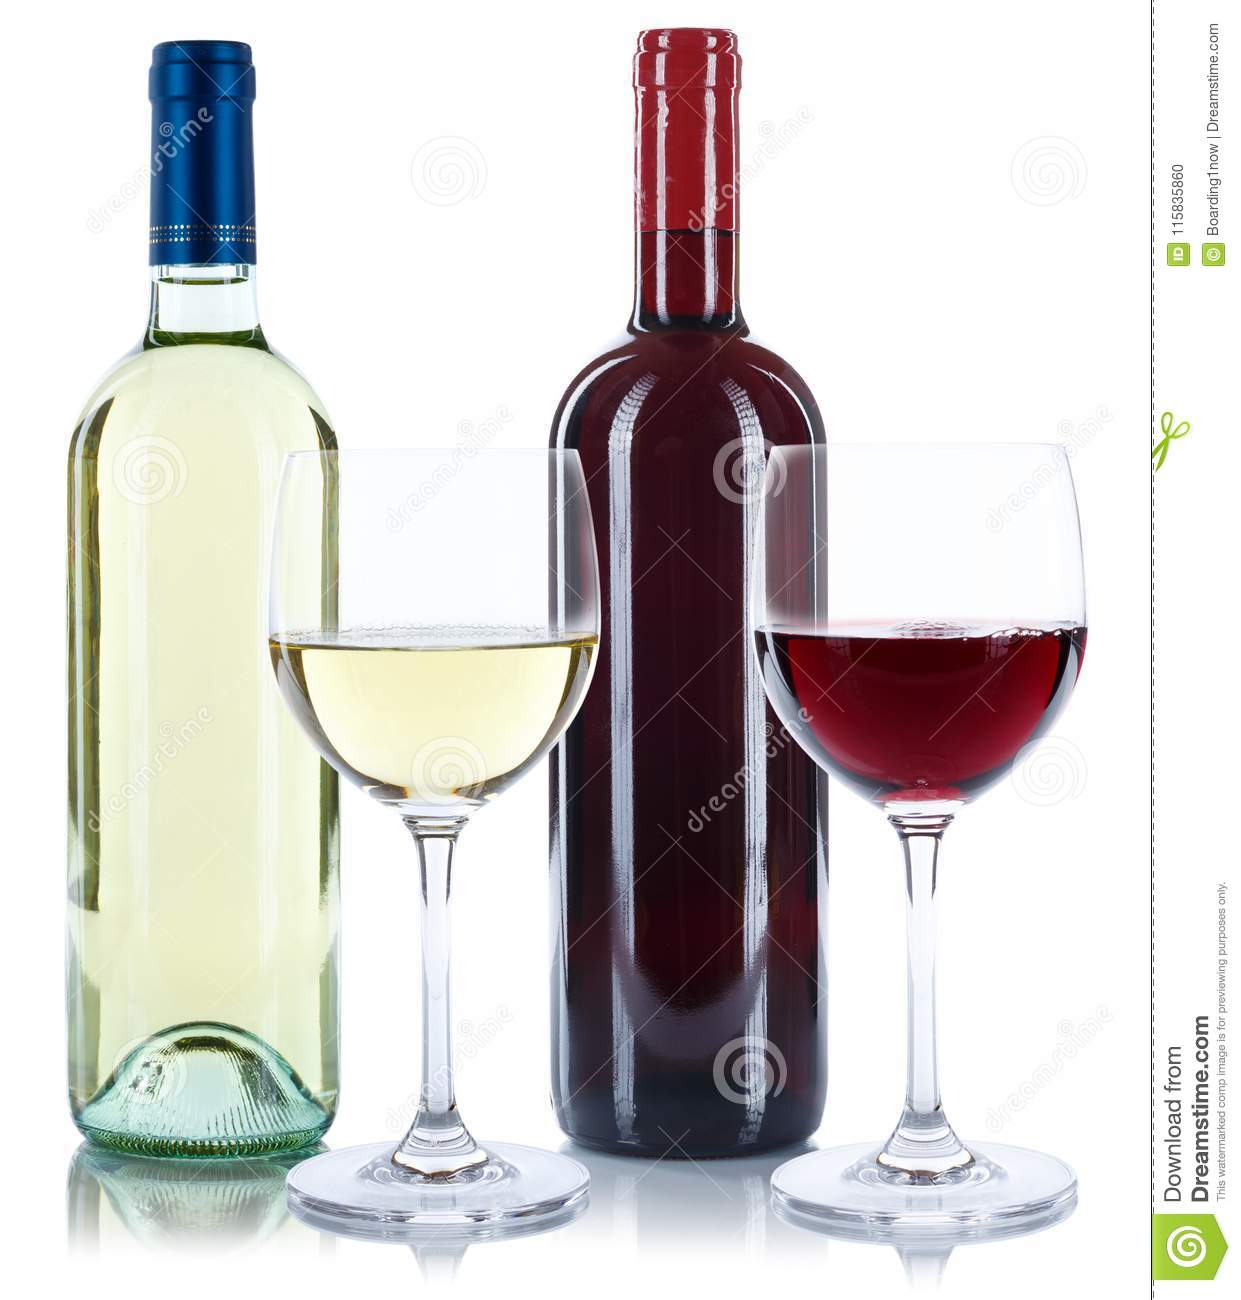 Red and white wine bottles beverage glasses isolated